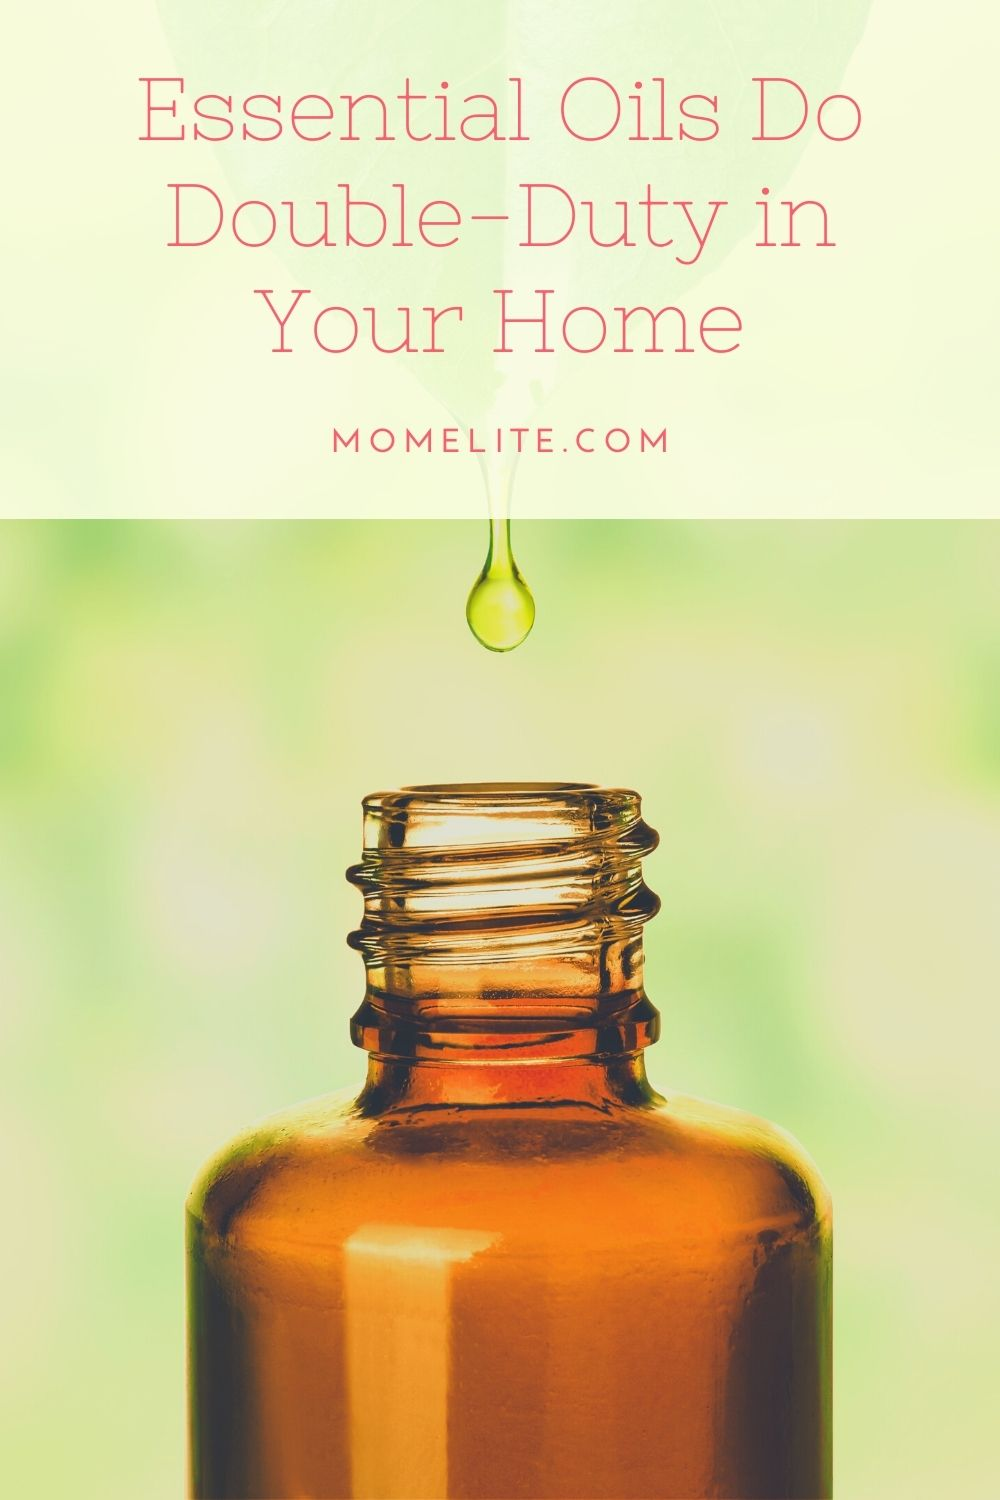 Essential Oils Do Double-Duty in Your Home